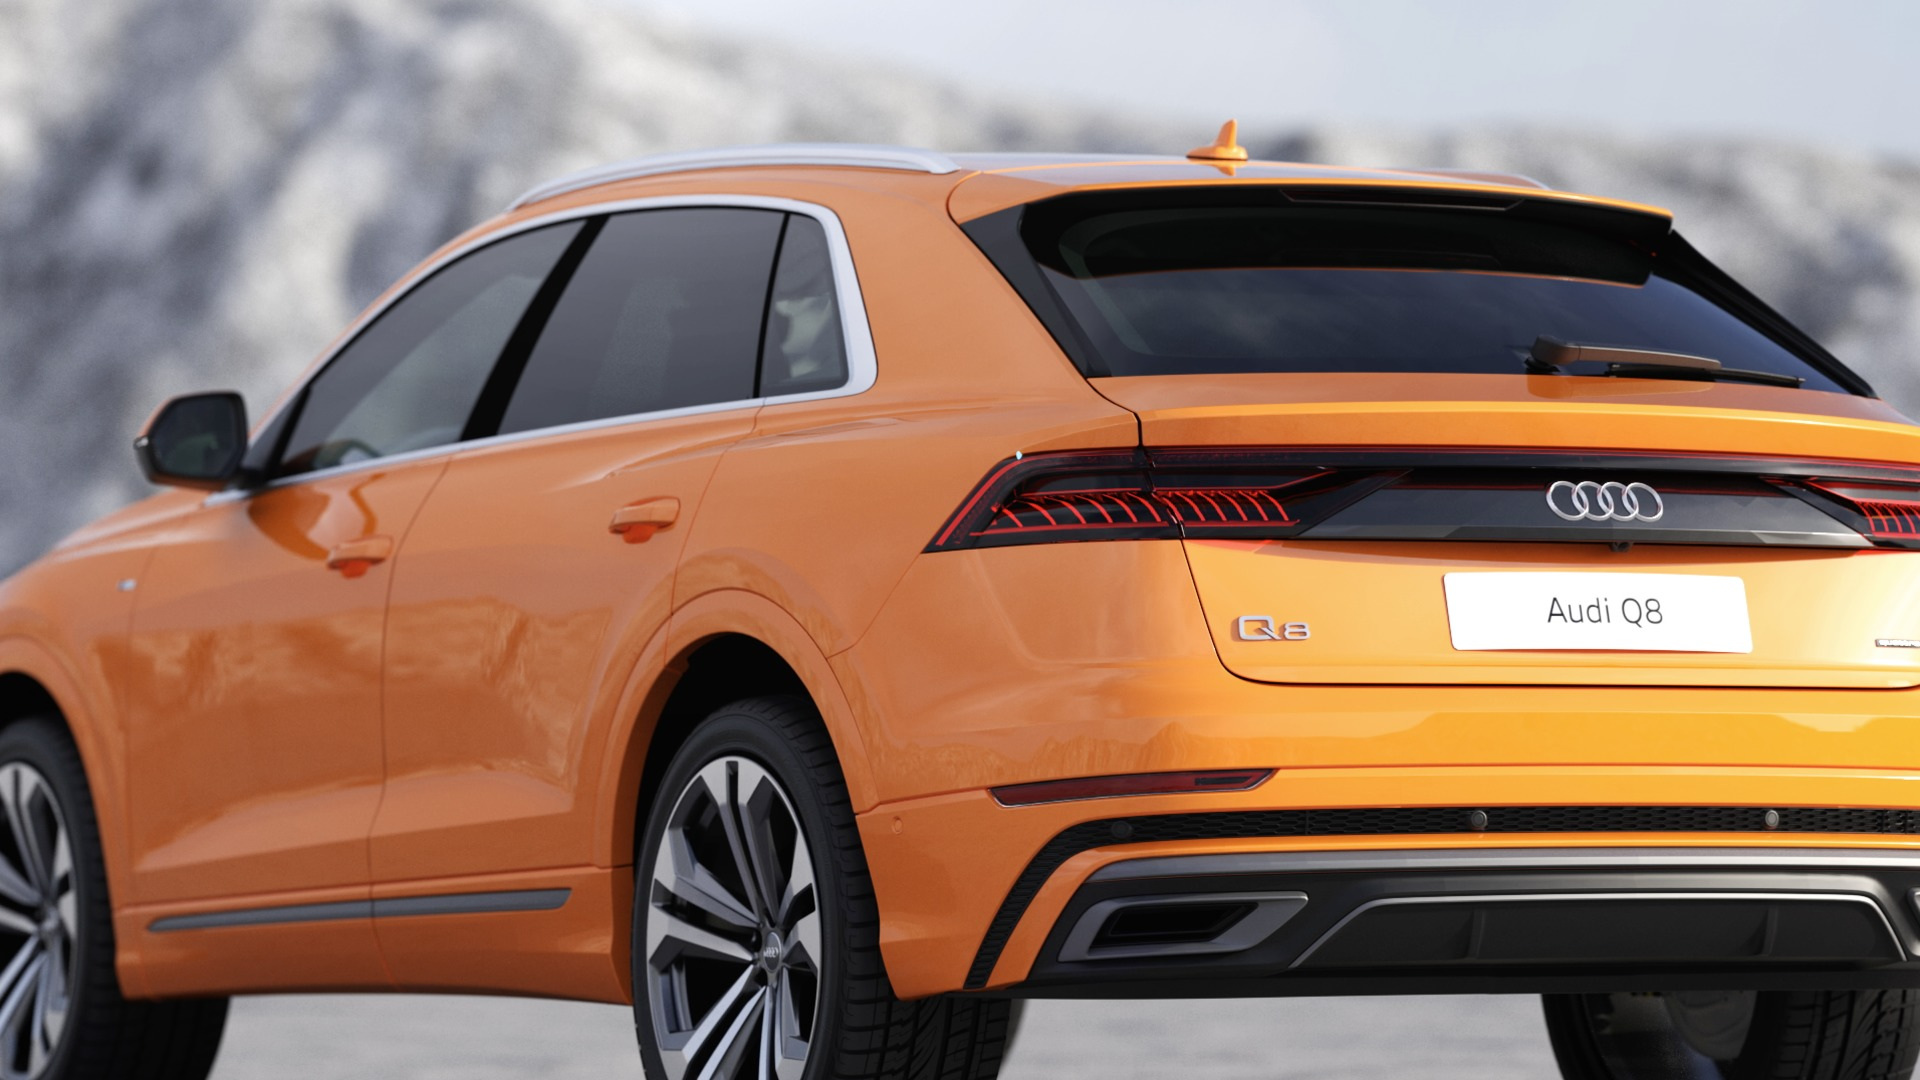 Animation Audi Q8 exterior design